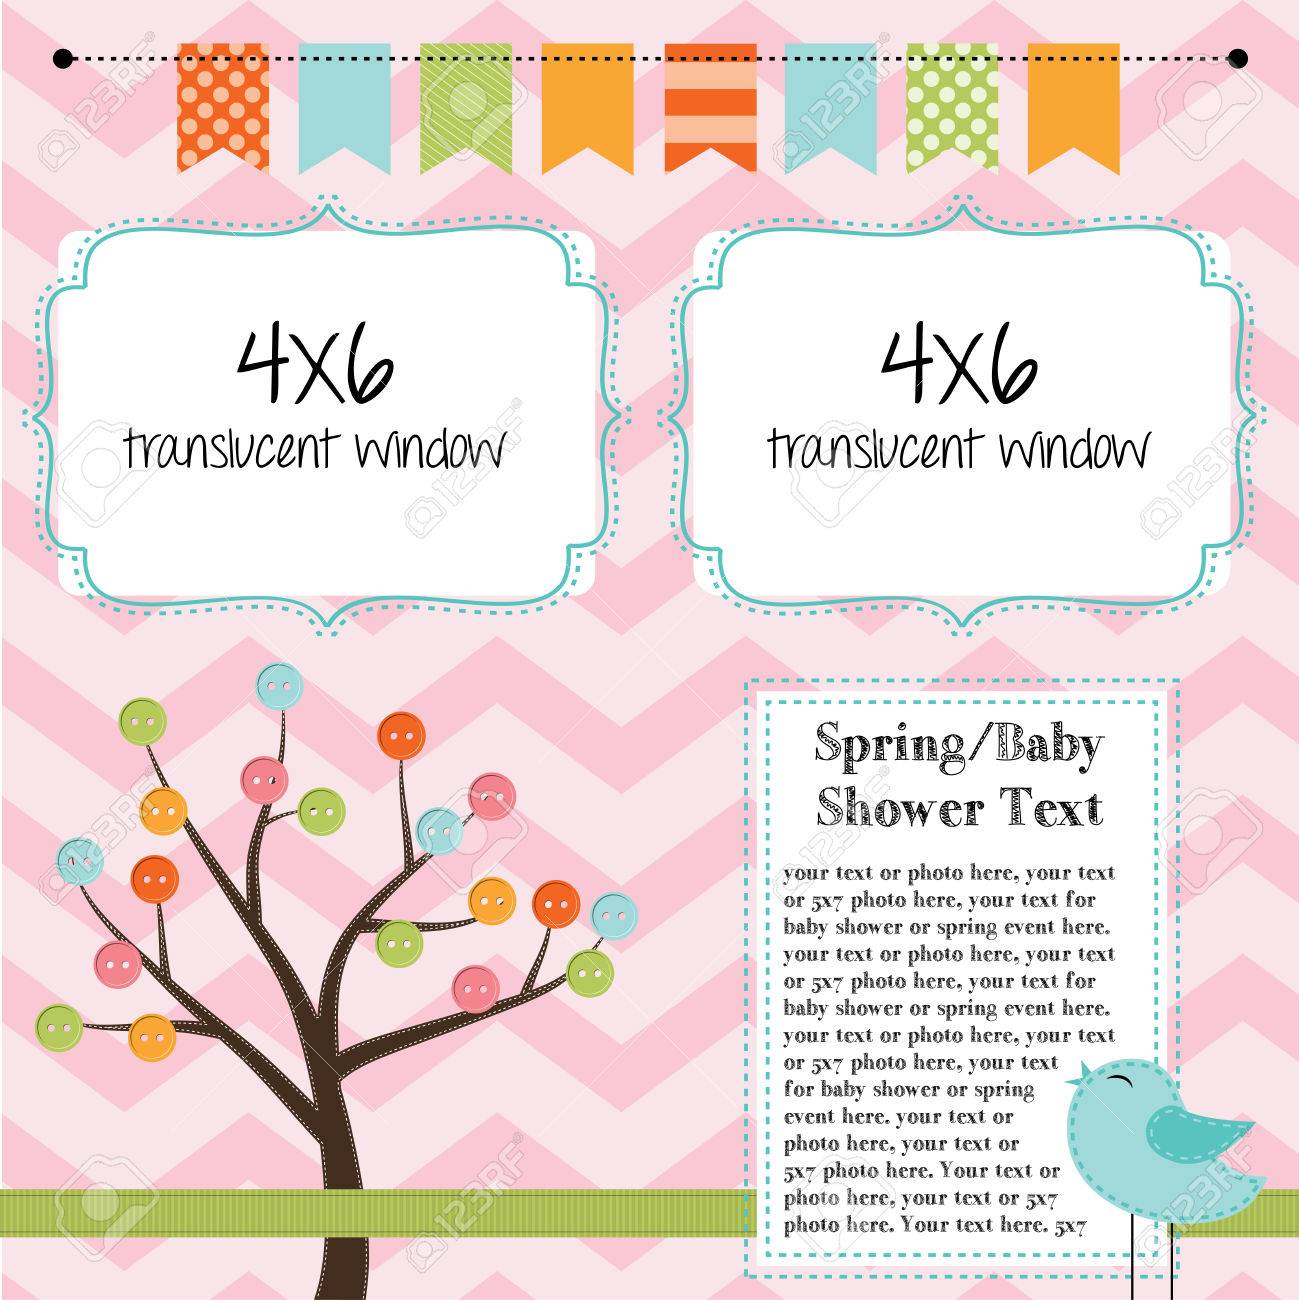 Spring, baby shower, or summer layout with trees, birds and banner or bunting, background for scrapbooking, vector format - 27747631